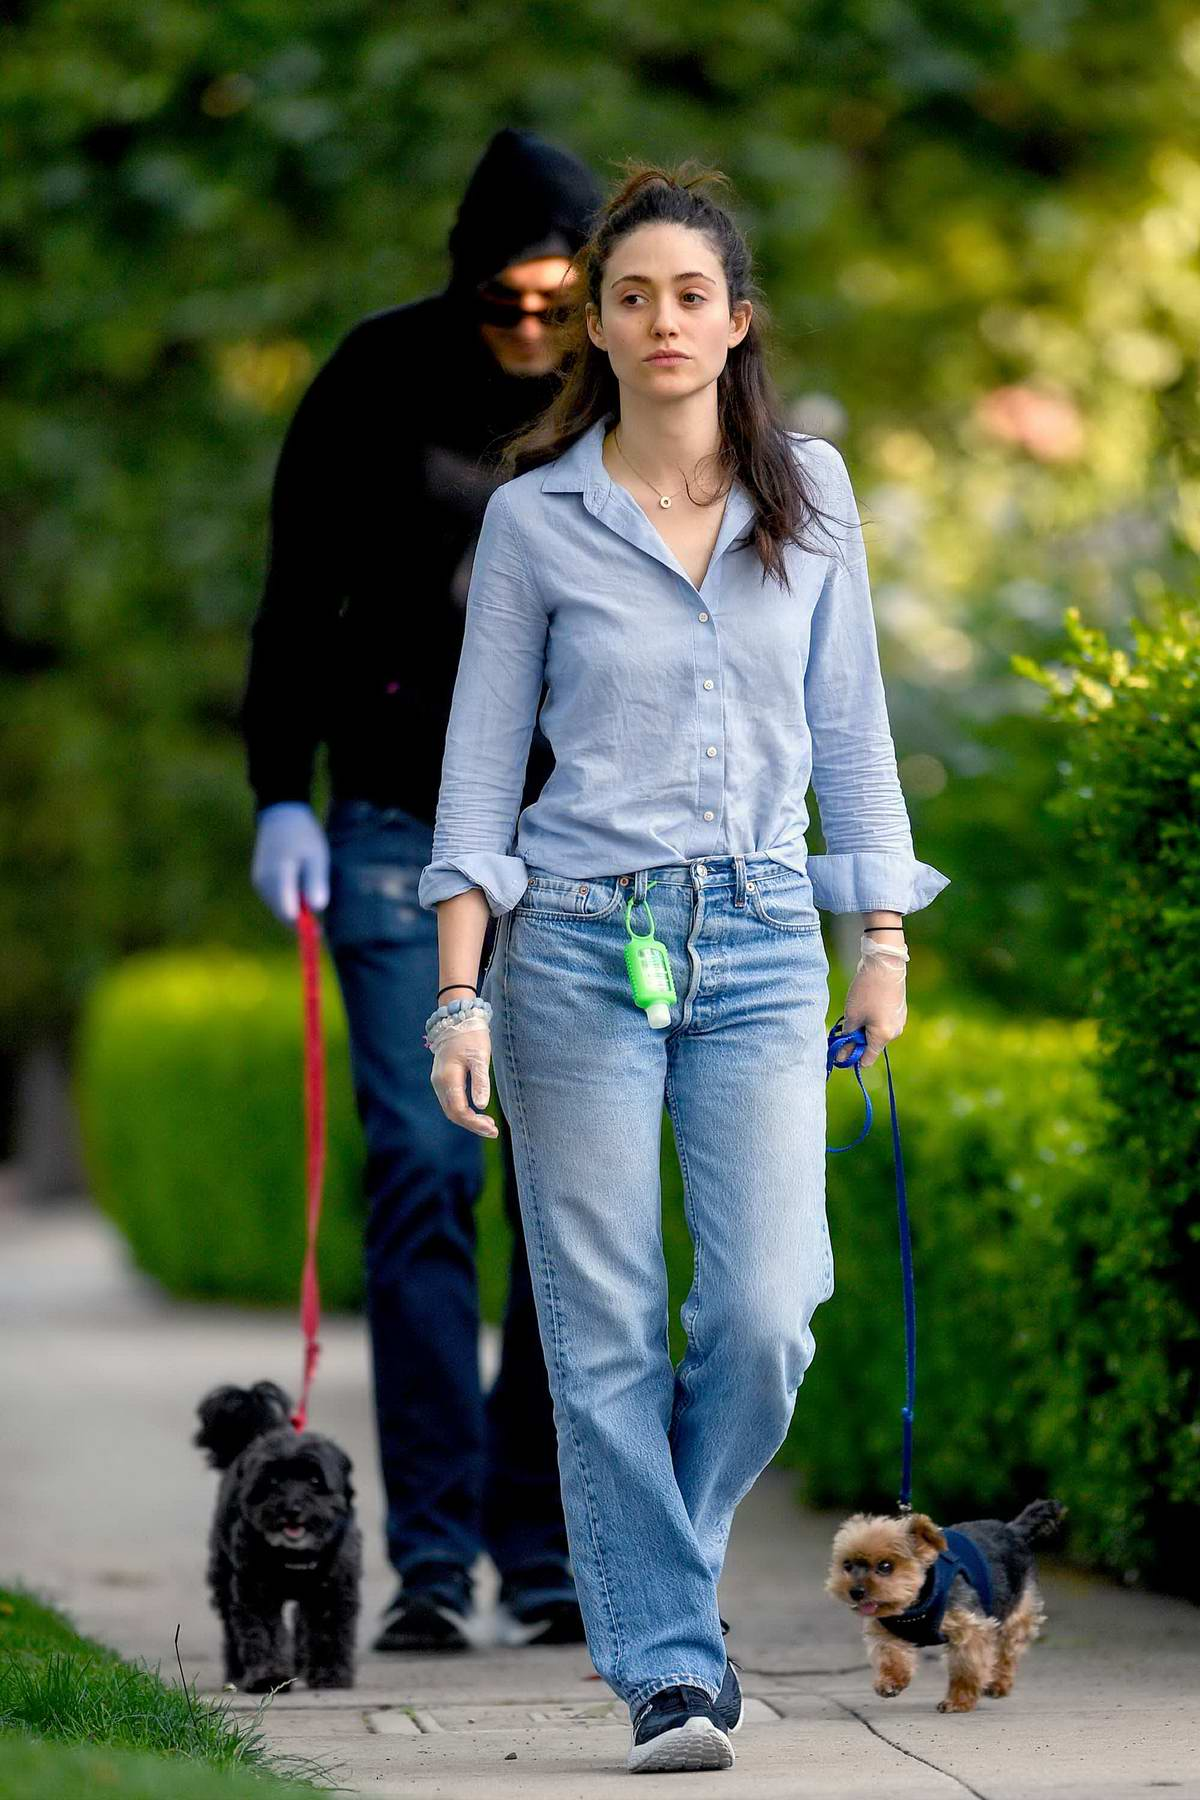 Emmy Rossum looks great in a blue shirt and jeans while out for walk with Sam Esmail in Los Angeles